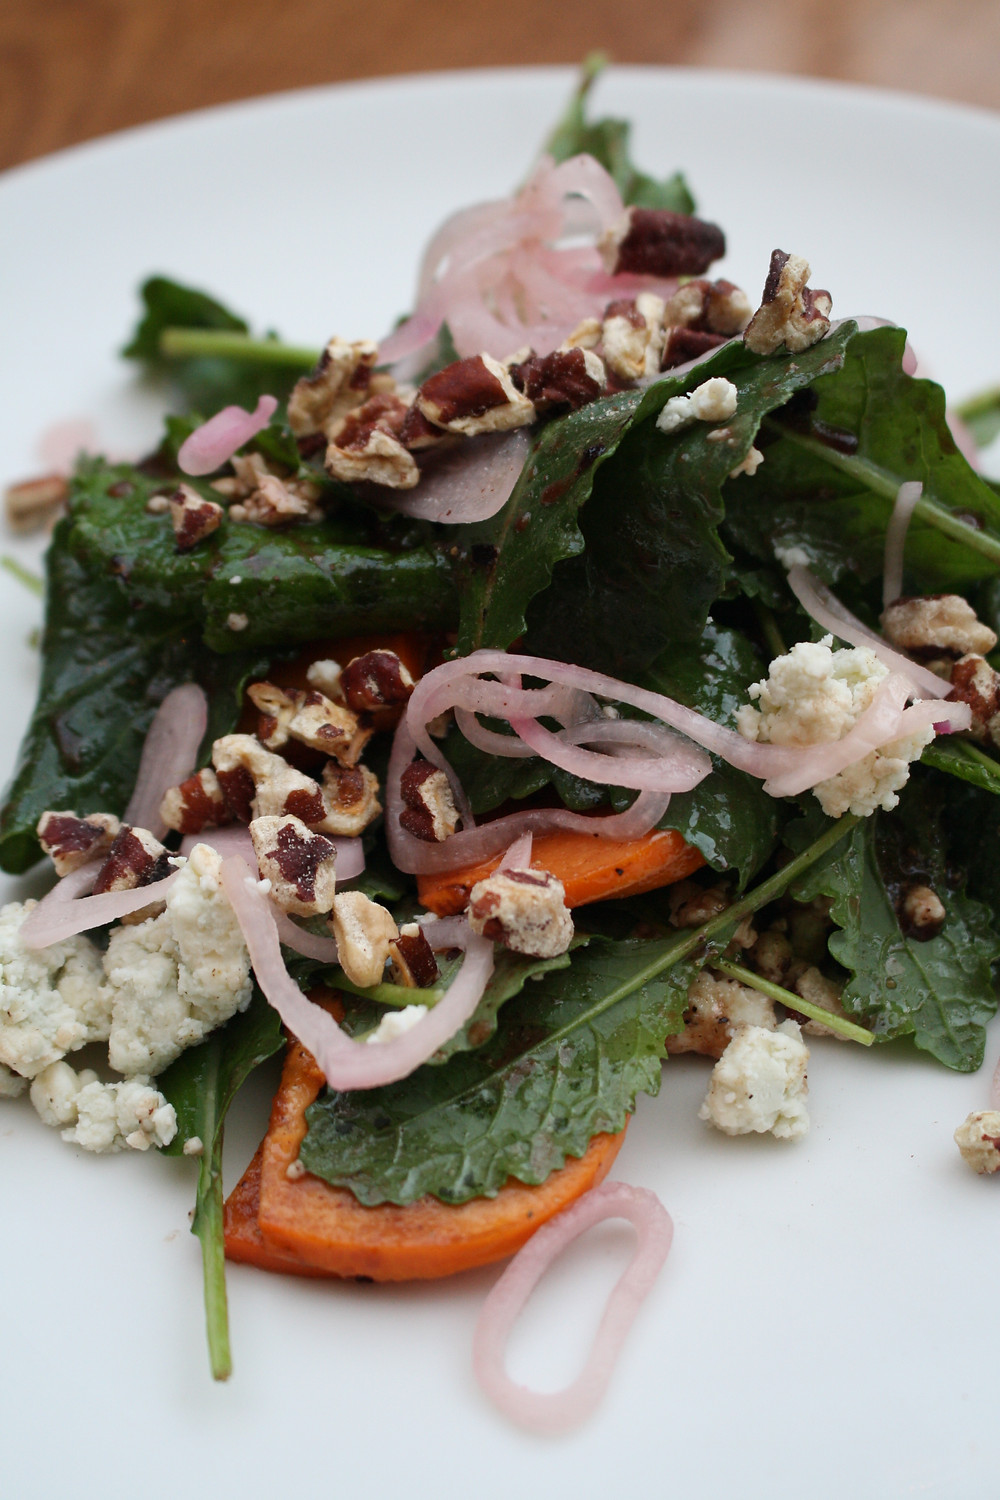 persimmon salad  baby kale, pickled shallots, blue cheese, pecans,  huckleberry vinaigrette